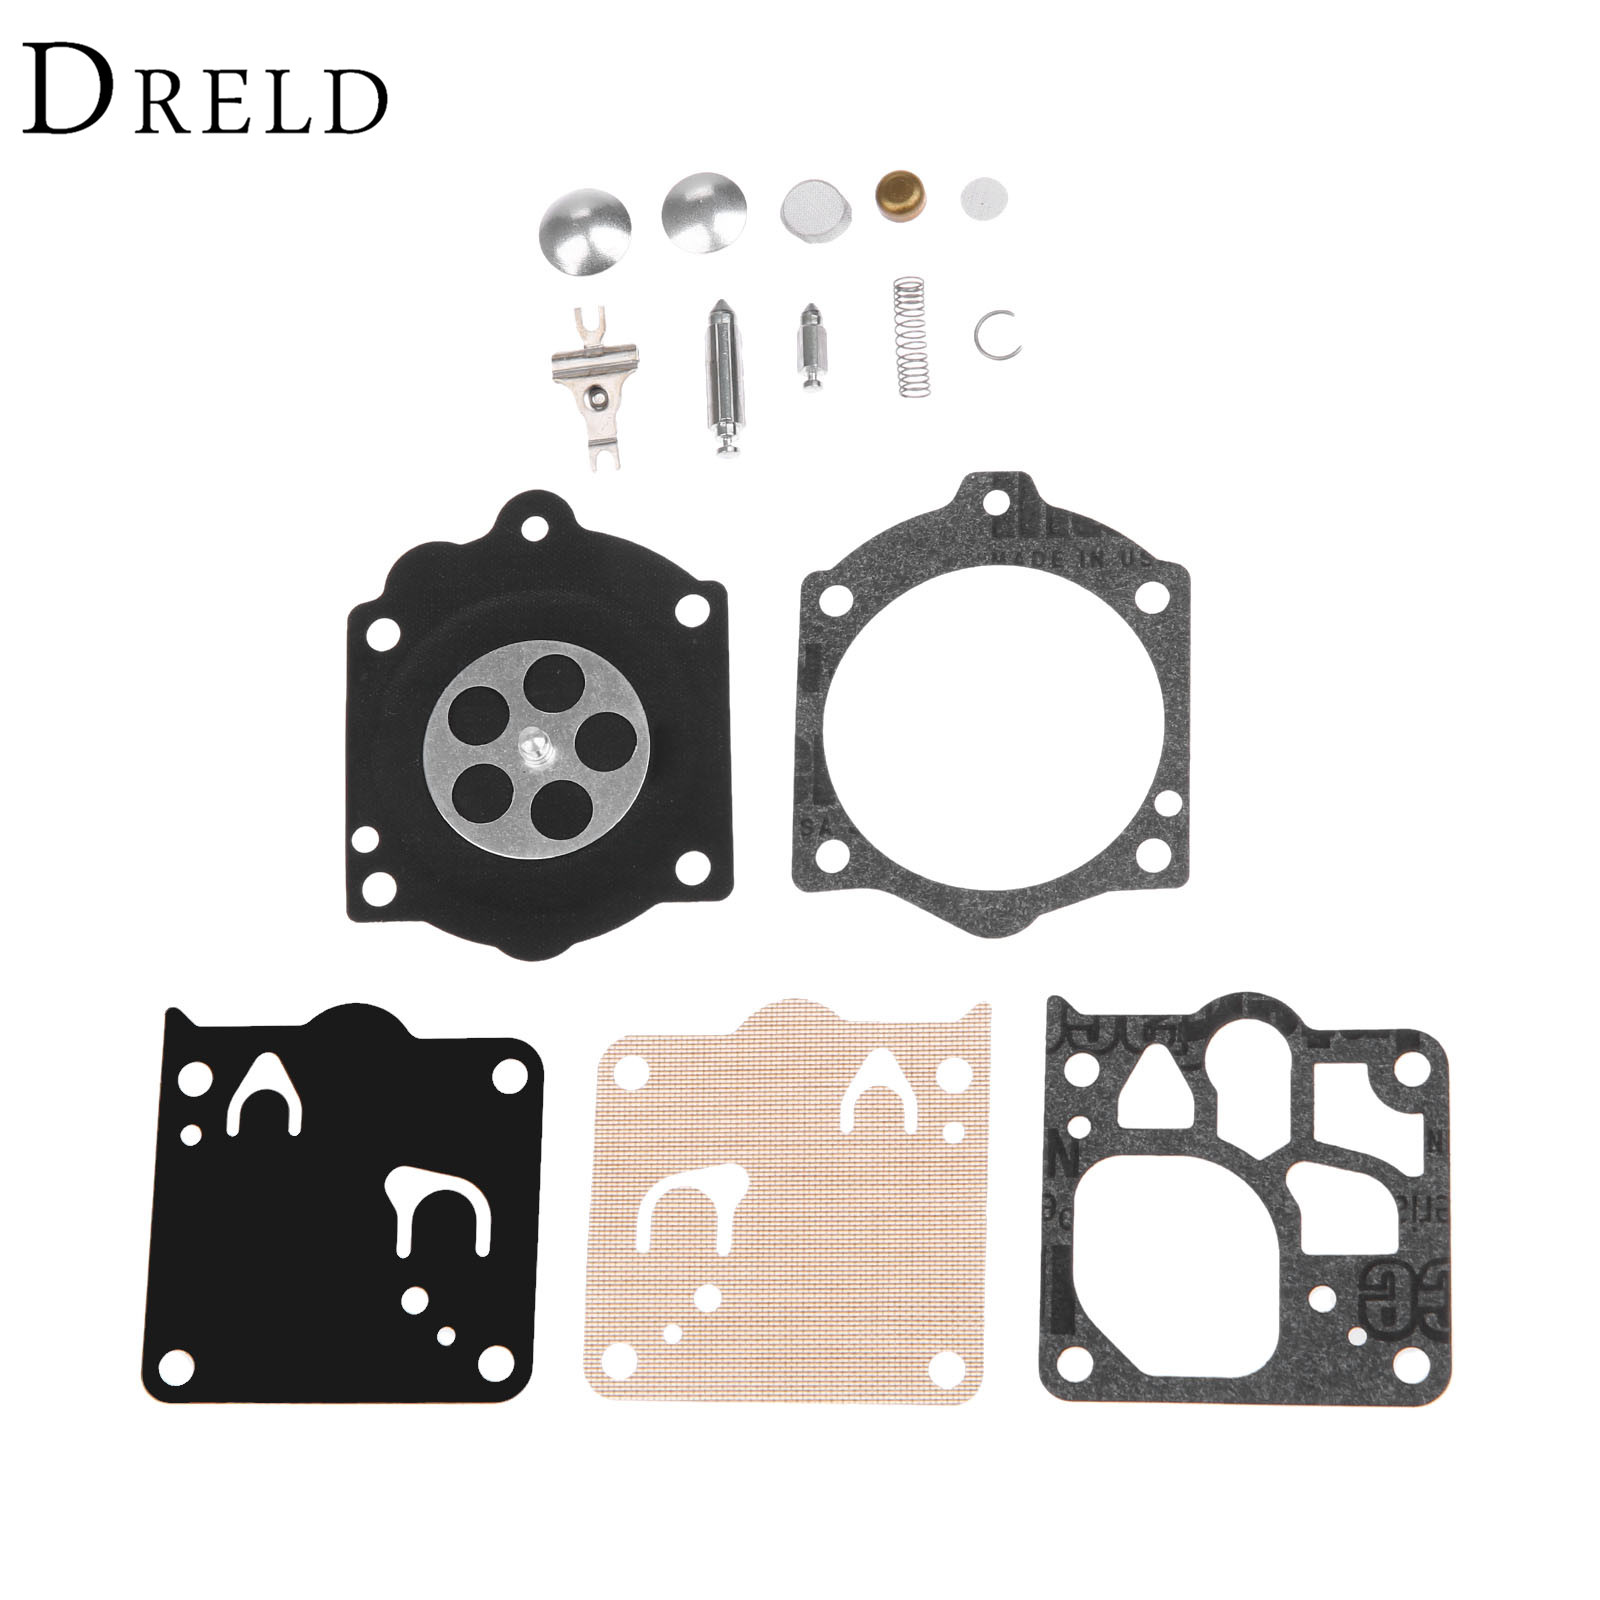 DRELD Carburetor Carb Rebuild Kit Gasket Diaphragm For Stihl MS660 Chainsaw Walbro WJ Carb Replace Walbro K10-WJ/New K12-WJ